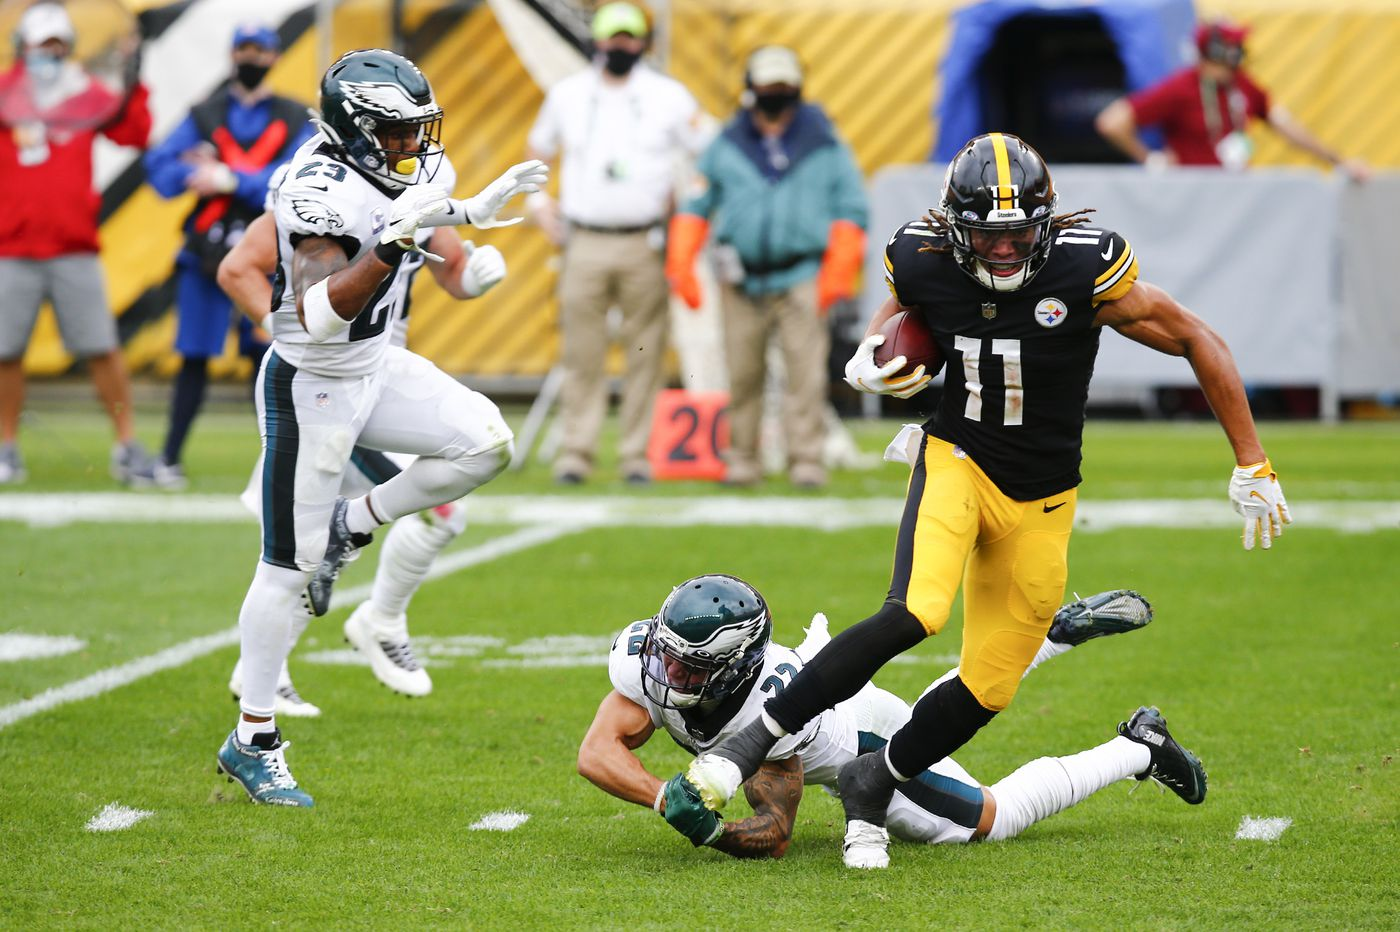 Grading the Eagles' performance in Sunday's 38-29 loss to the Steelers